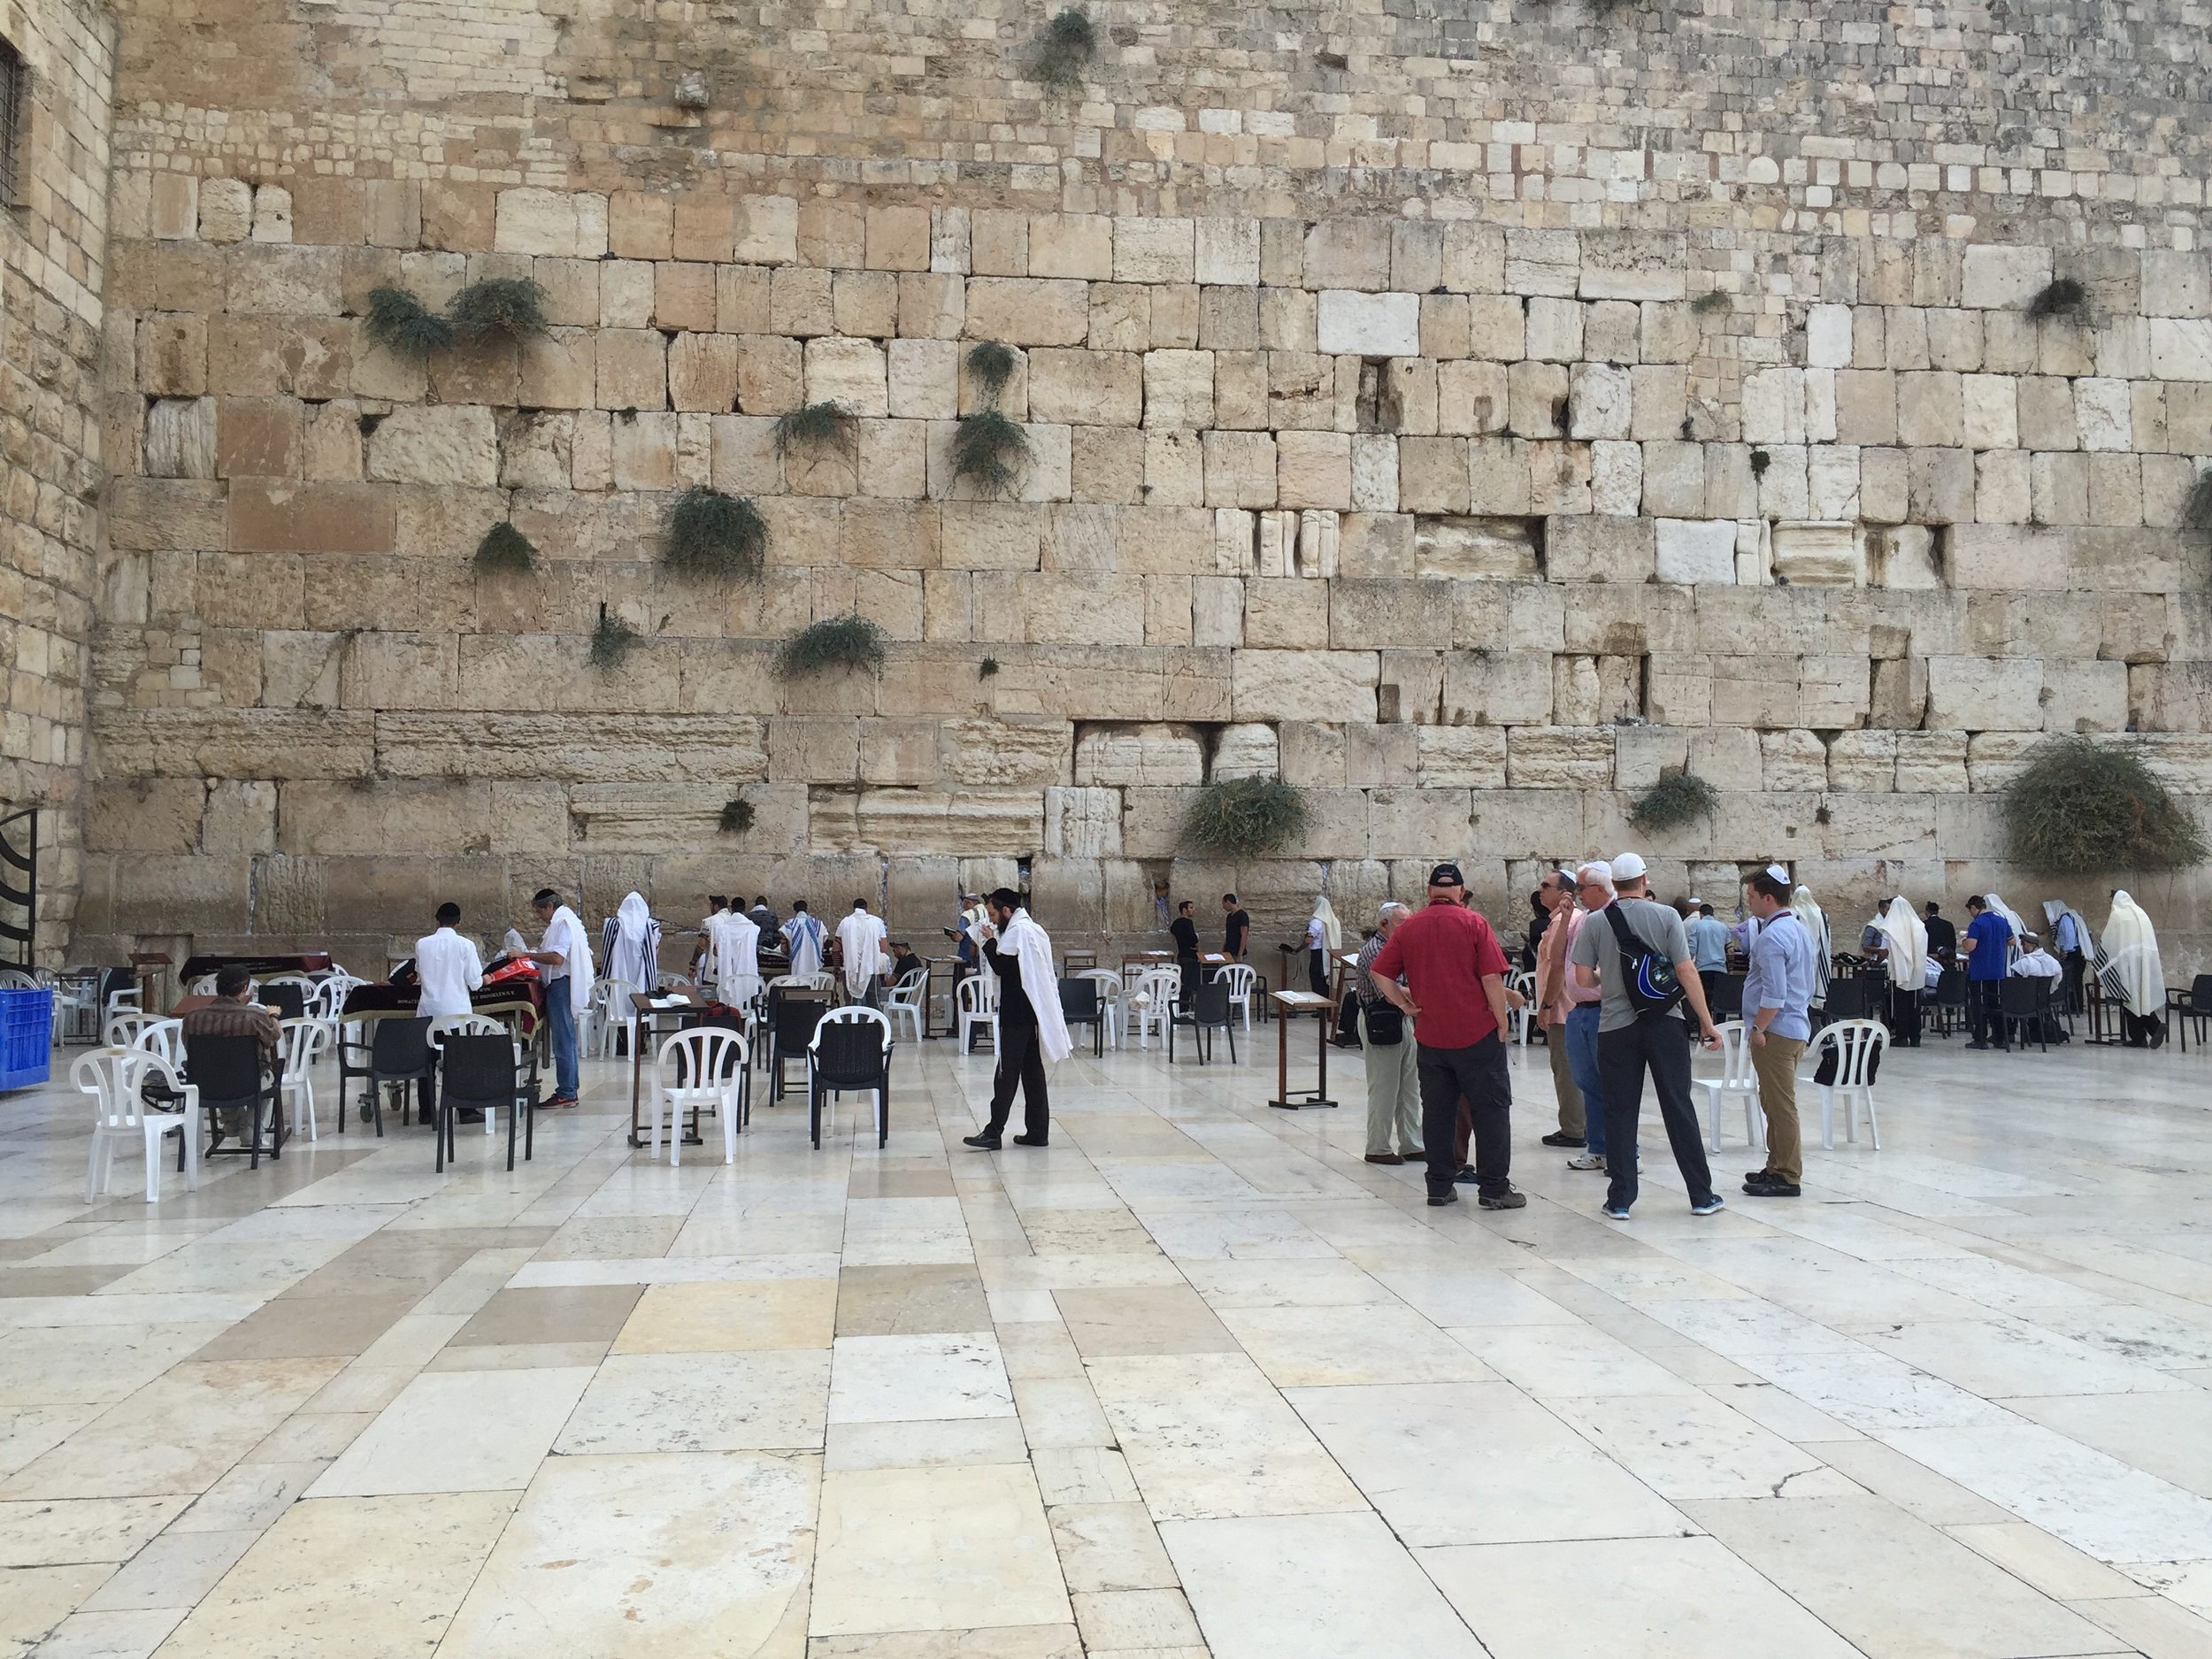 The northern-most end of the wailing wall, the western foundation wall of the Temple Mount where Jewish men and woman come to get close to the location of the temple and pray. Gus provided us with instruction about how to approach the wall. There is a section for both men and women, seperated by a low wall, to keep them from being a distraction to each other. As the men approach they need to have their head covered. We were allowed to use our ball caps, however they also had Yarmika for those who needed them. I want to share more about this site in a later post. The whole location is filled with deep emotion as we watched men and women practicing their faith.